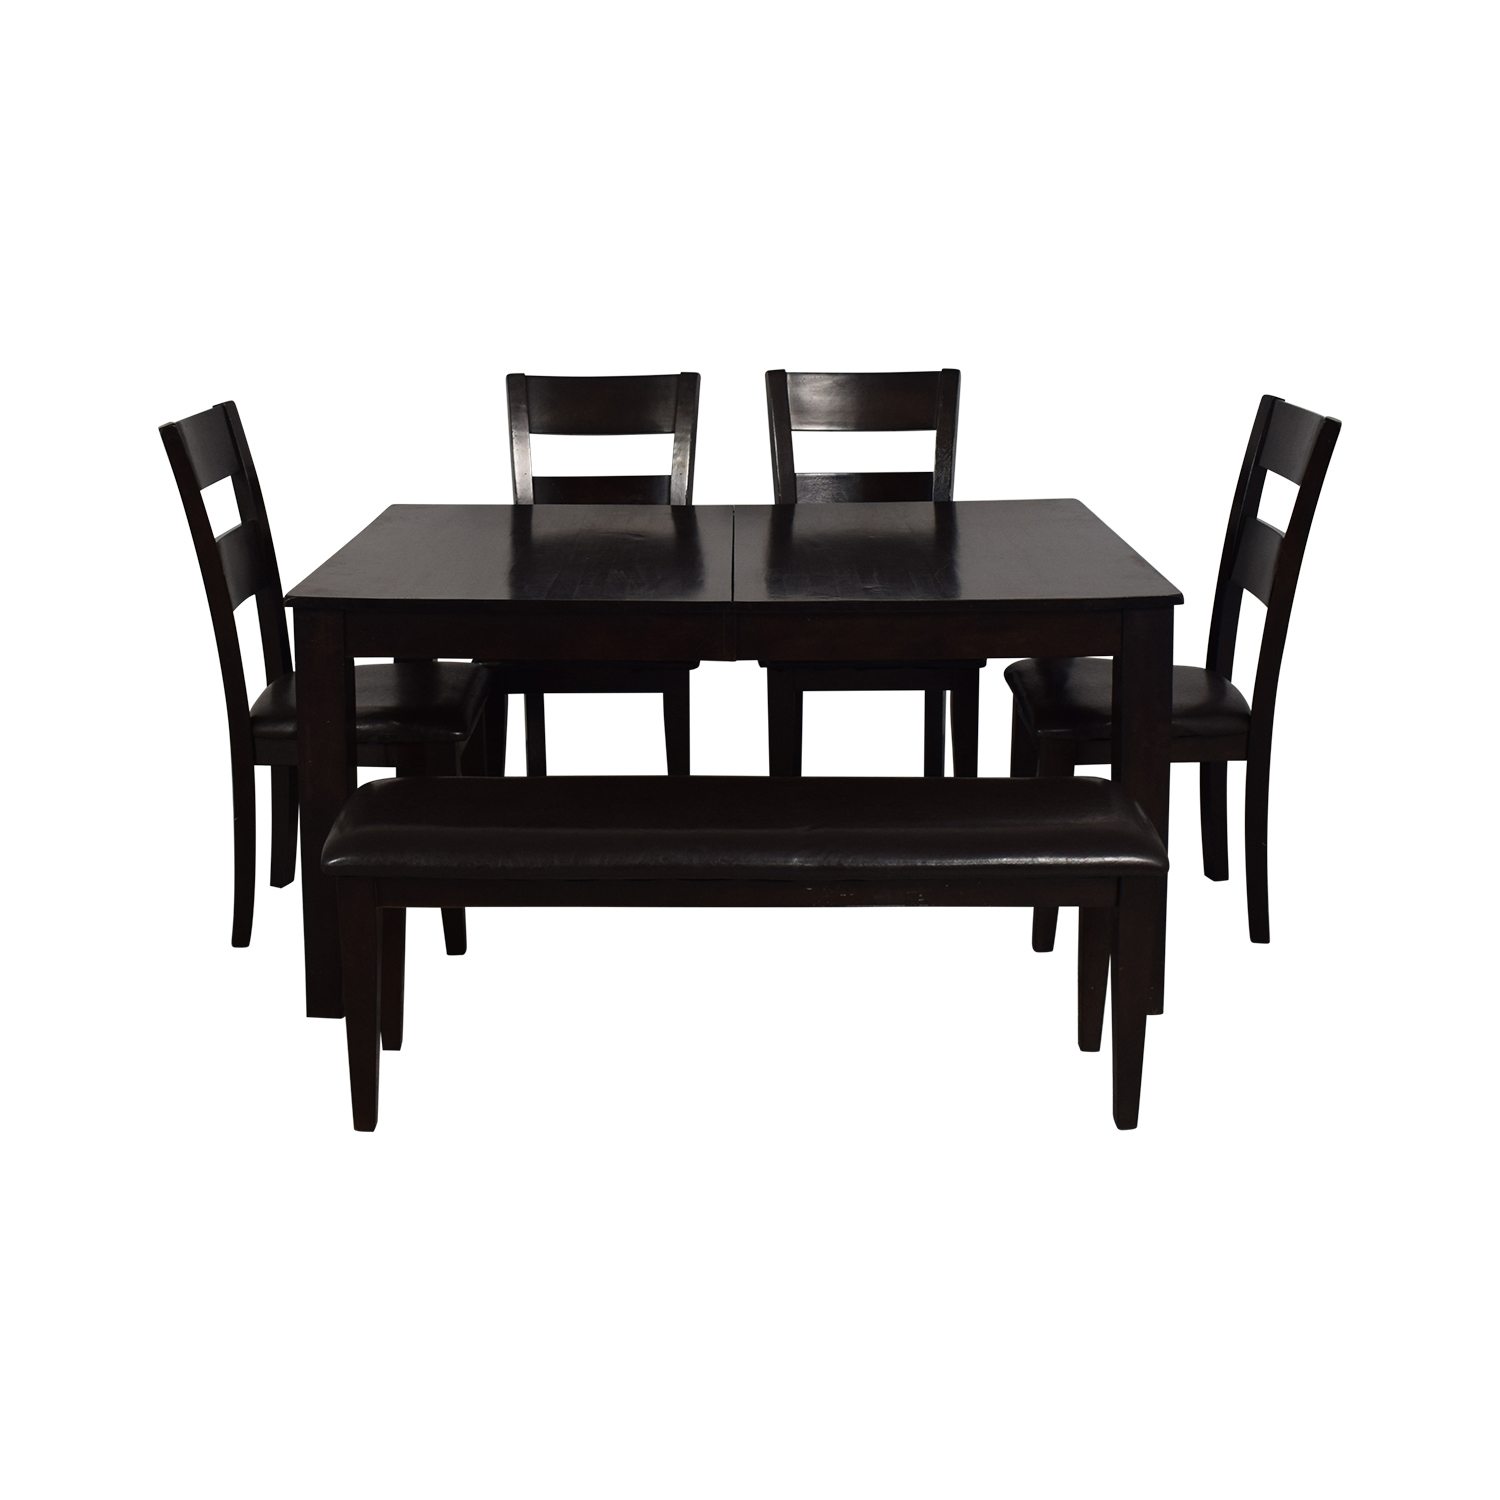 Raymour & Flanigan Raymour & Flanigan Kona Six Piece Dining Set on sale